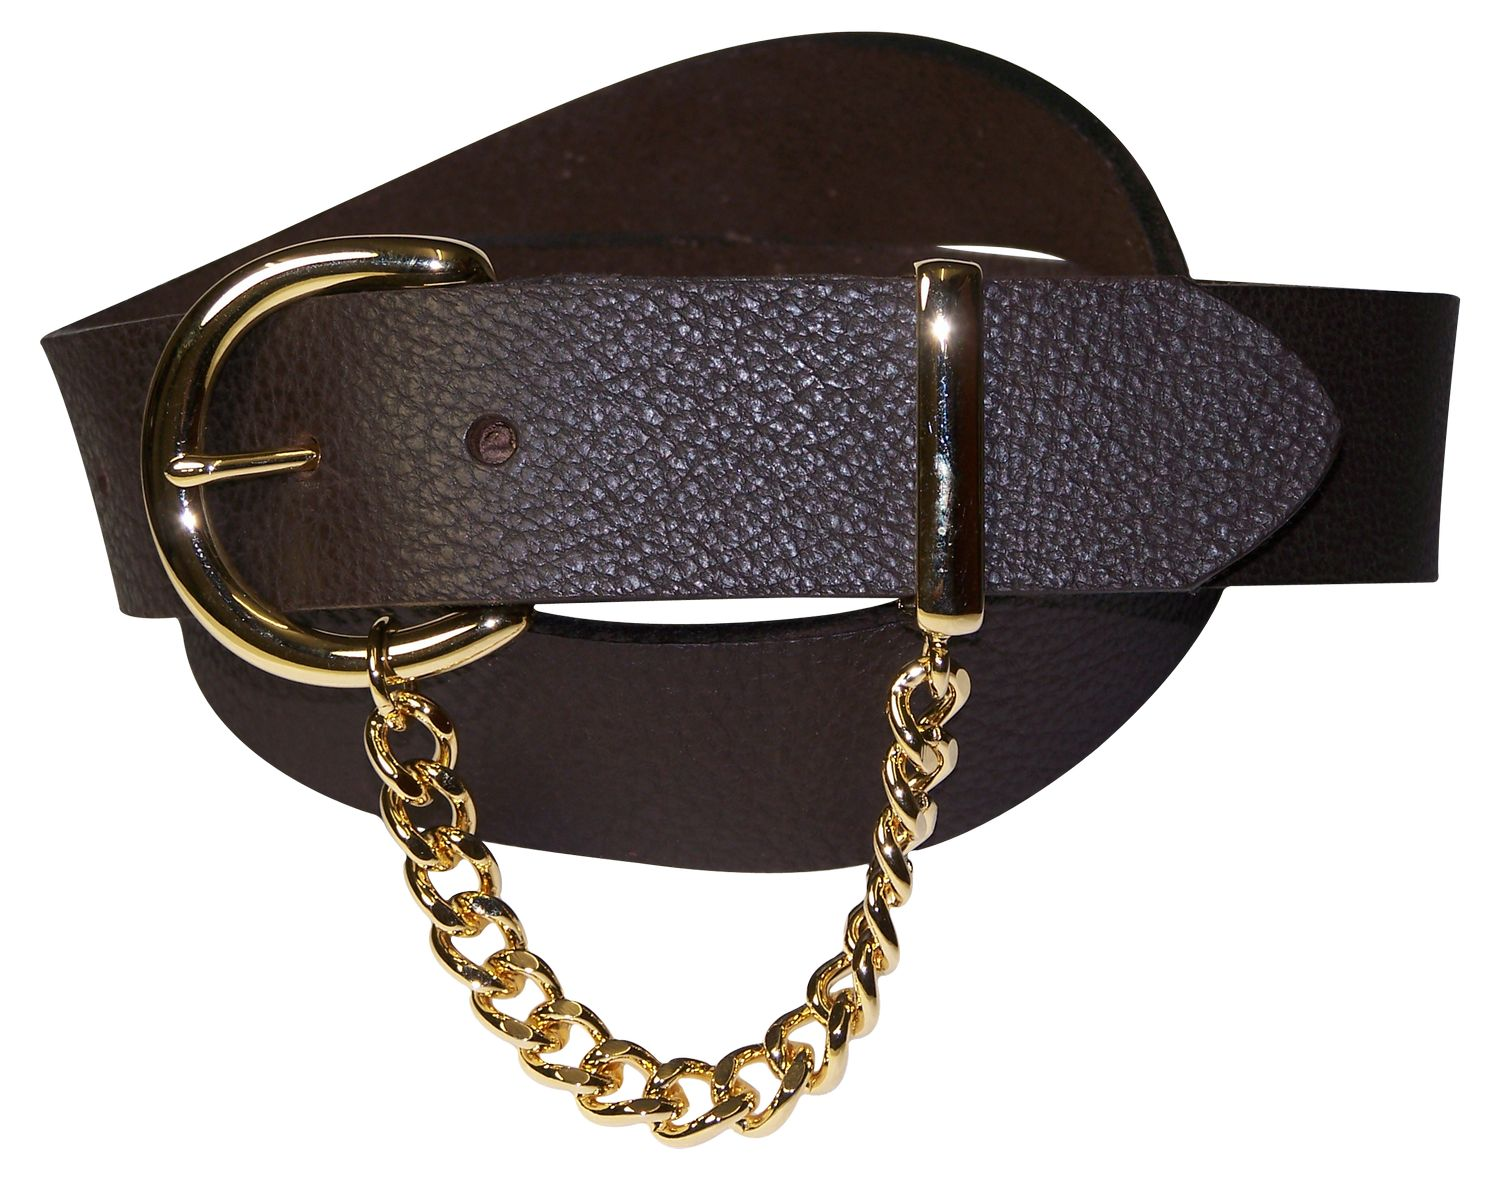 Carrie Beautiful Womens Genuine Leather Belt With A Gold Buckle Women Bags And Chain